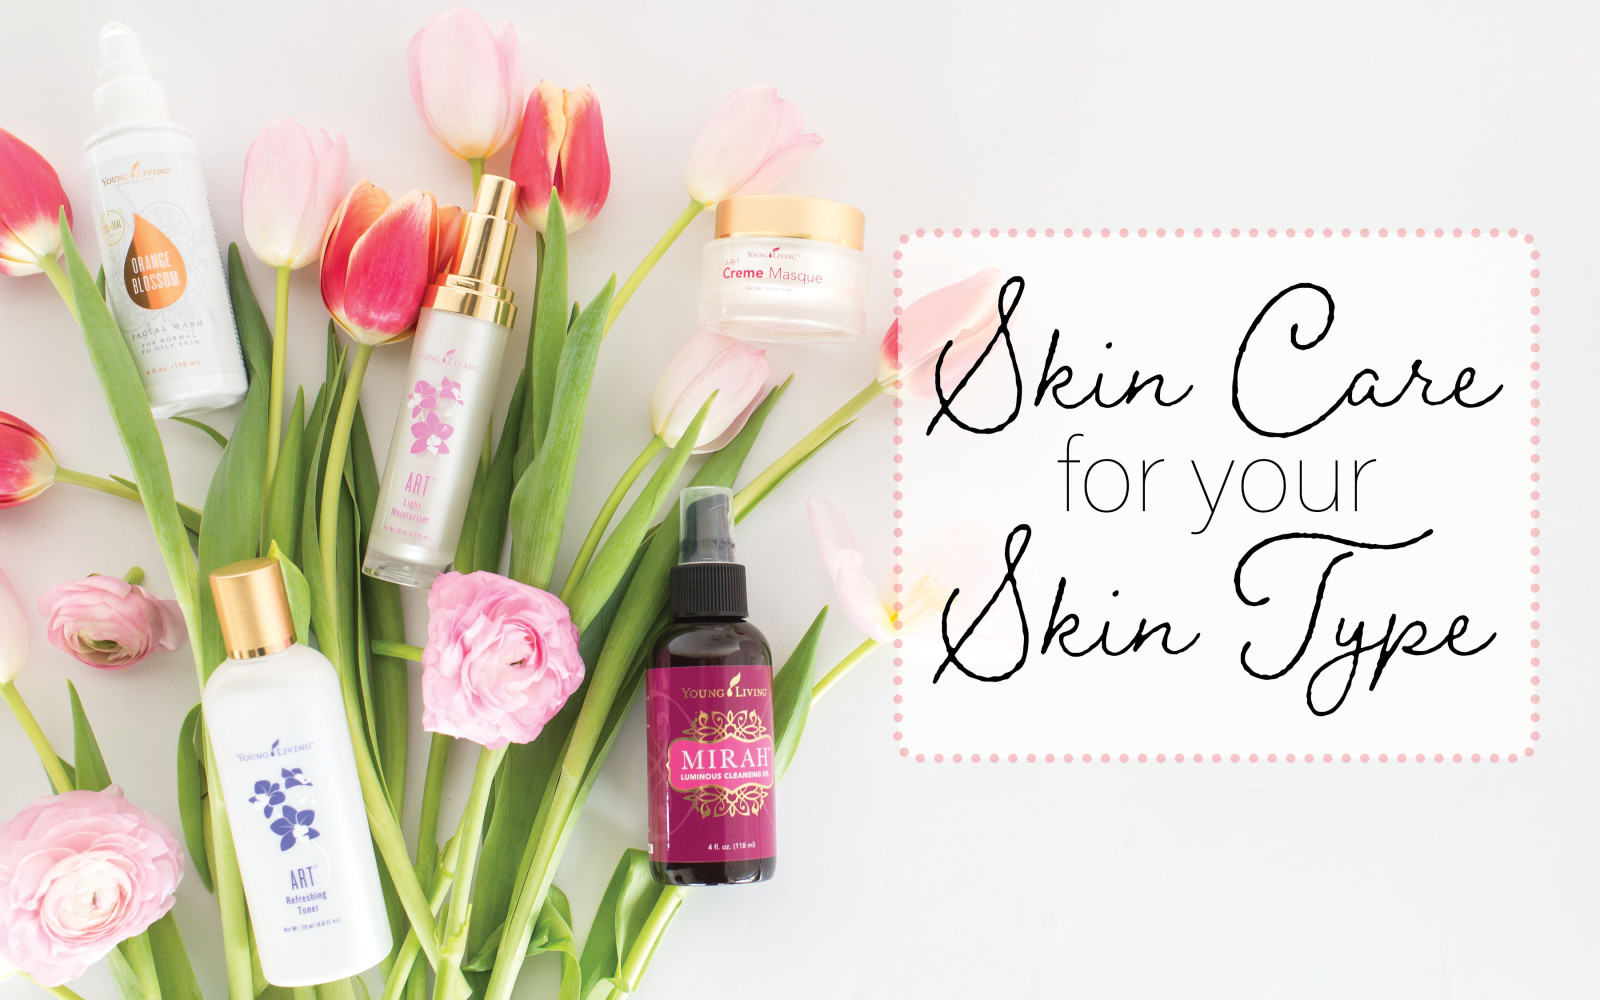 Skin Care for Your Skin Type